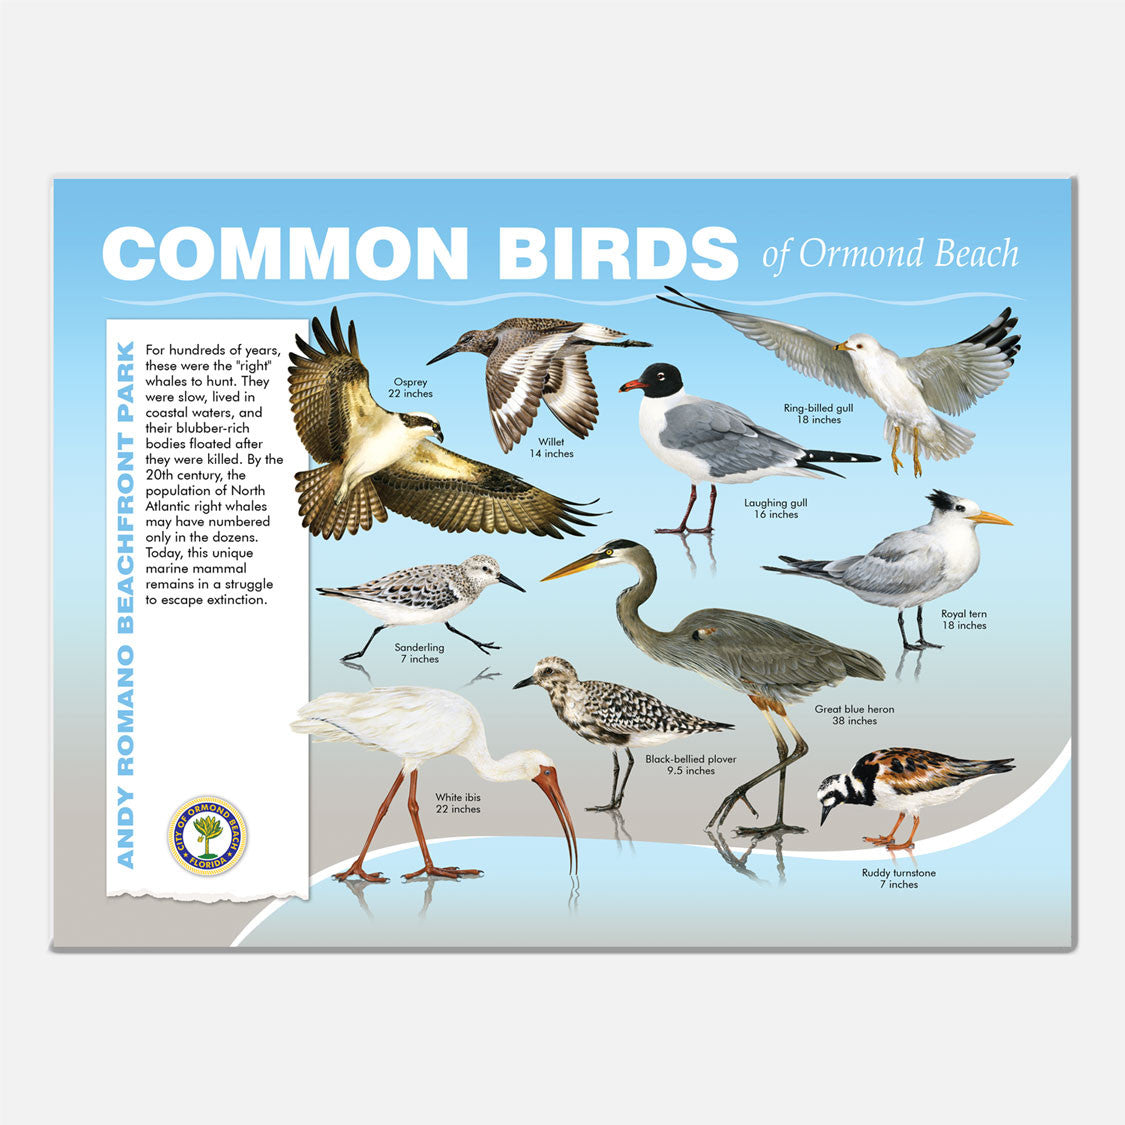 This beautifully illustrated educational display describes and identifies beach birds of Andy Romano Beachfront Park, Ormond Beach, Florida.